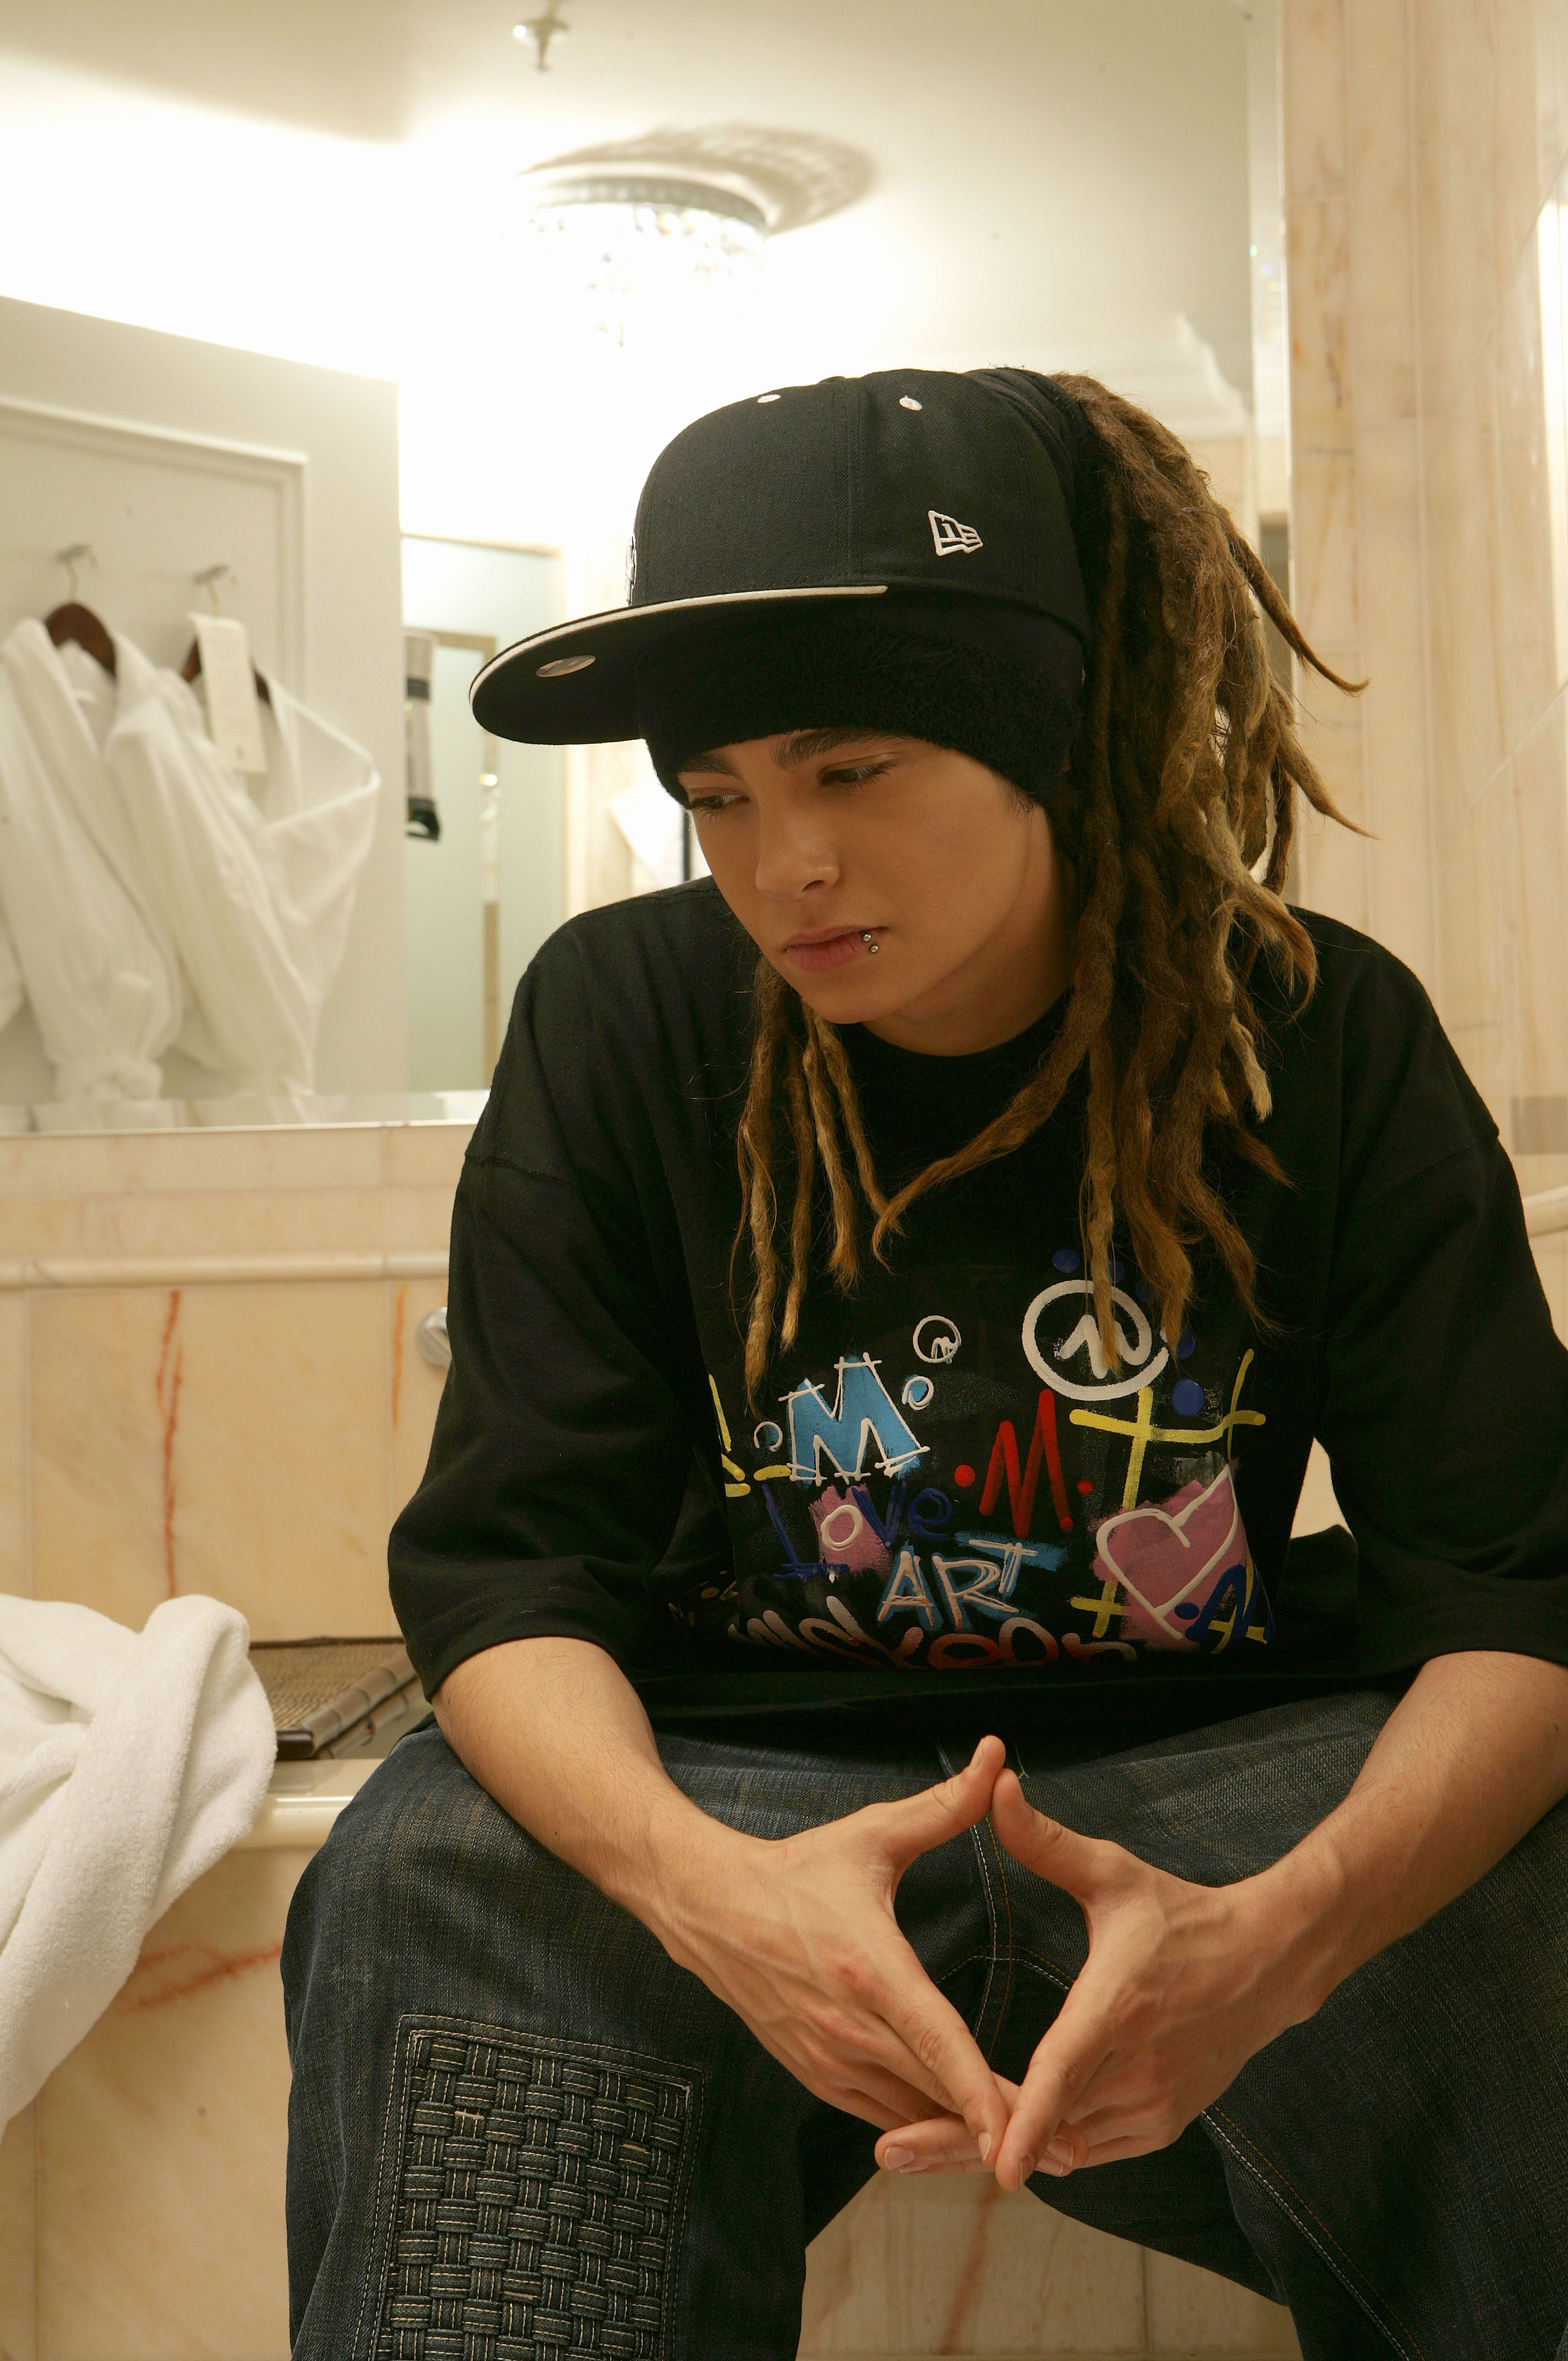 Tom Kaulitz Of Tokio Hotel In Miskeen Tees